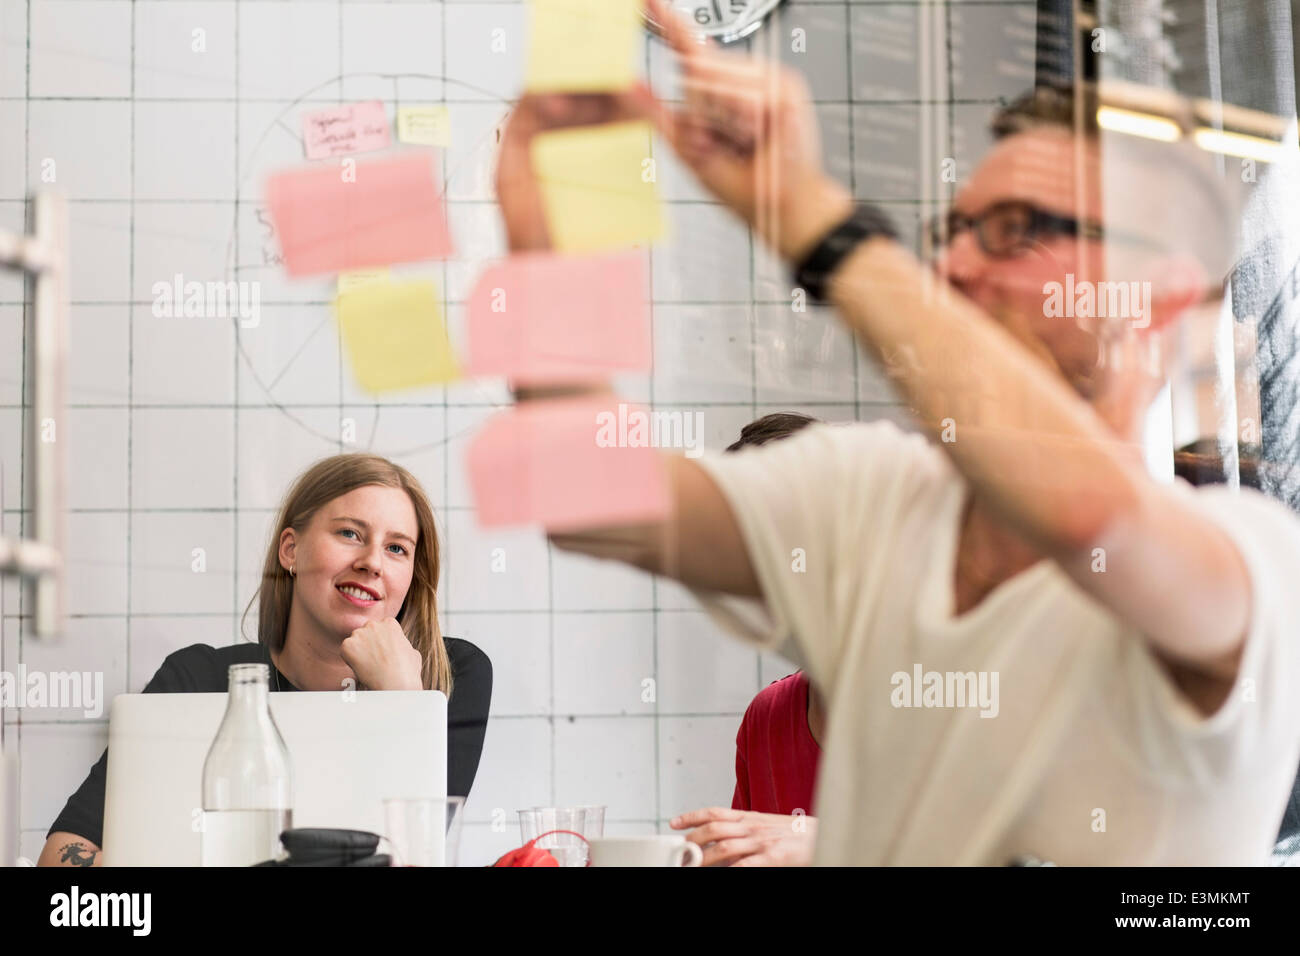 Young businessman writing ideas on adhesive notes with colleagues in background at creative office - Stock Image